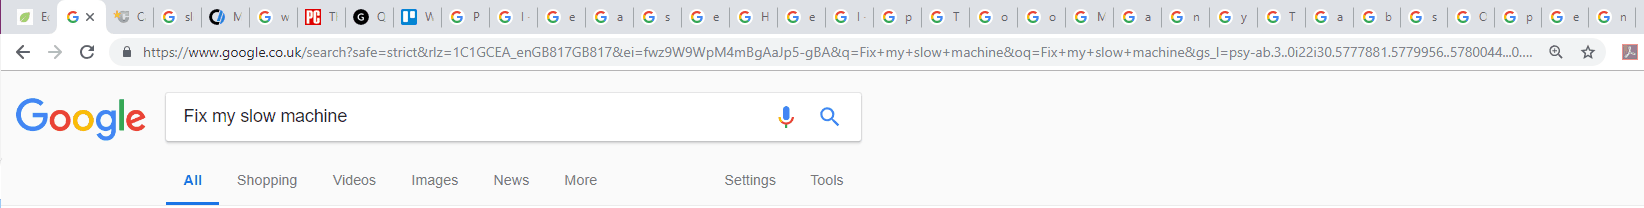 Too many tabs open in browser